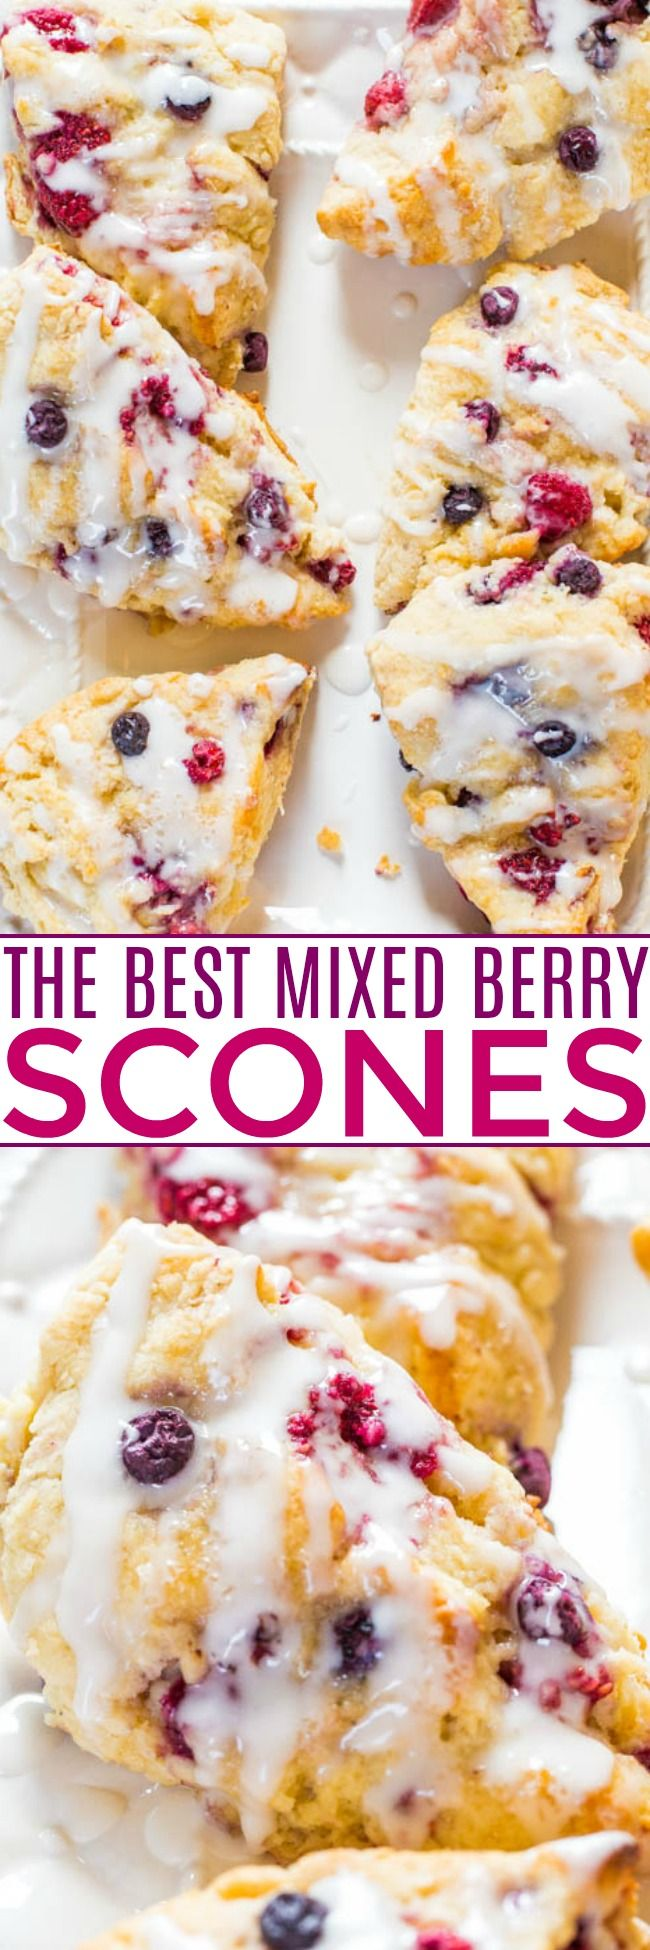 The BEST Scone Recipe (Glazed Mixed Berry Scones) - Averie Cooks